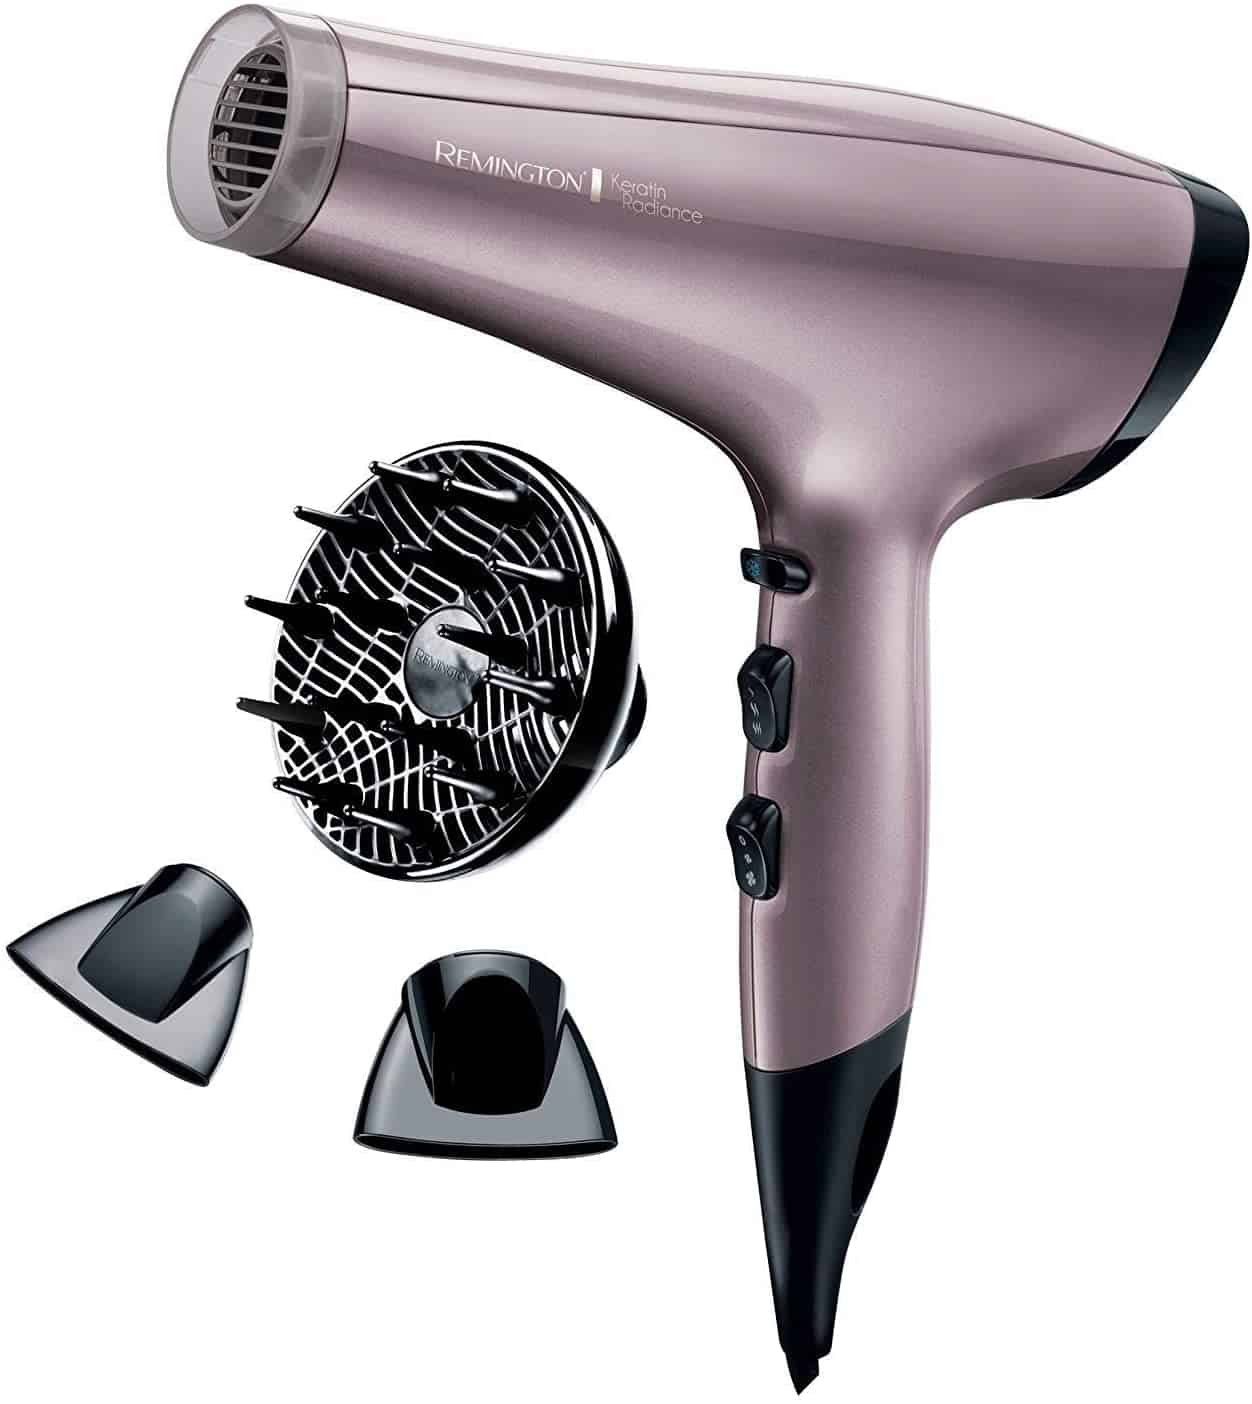 remington karatin dryer